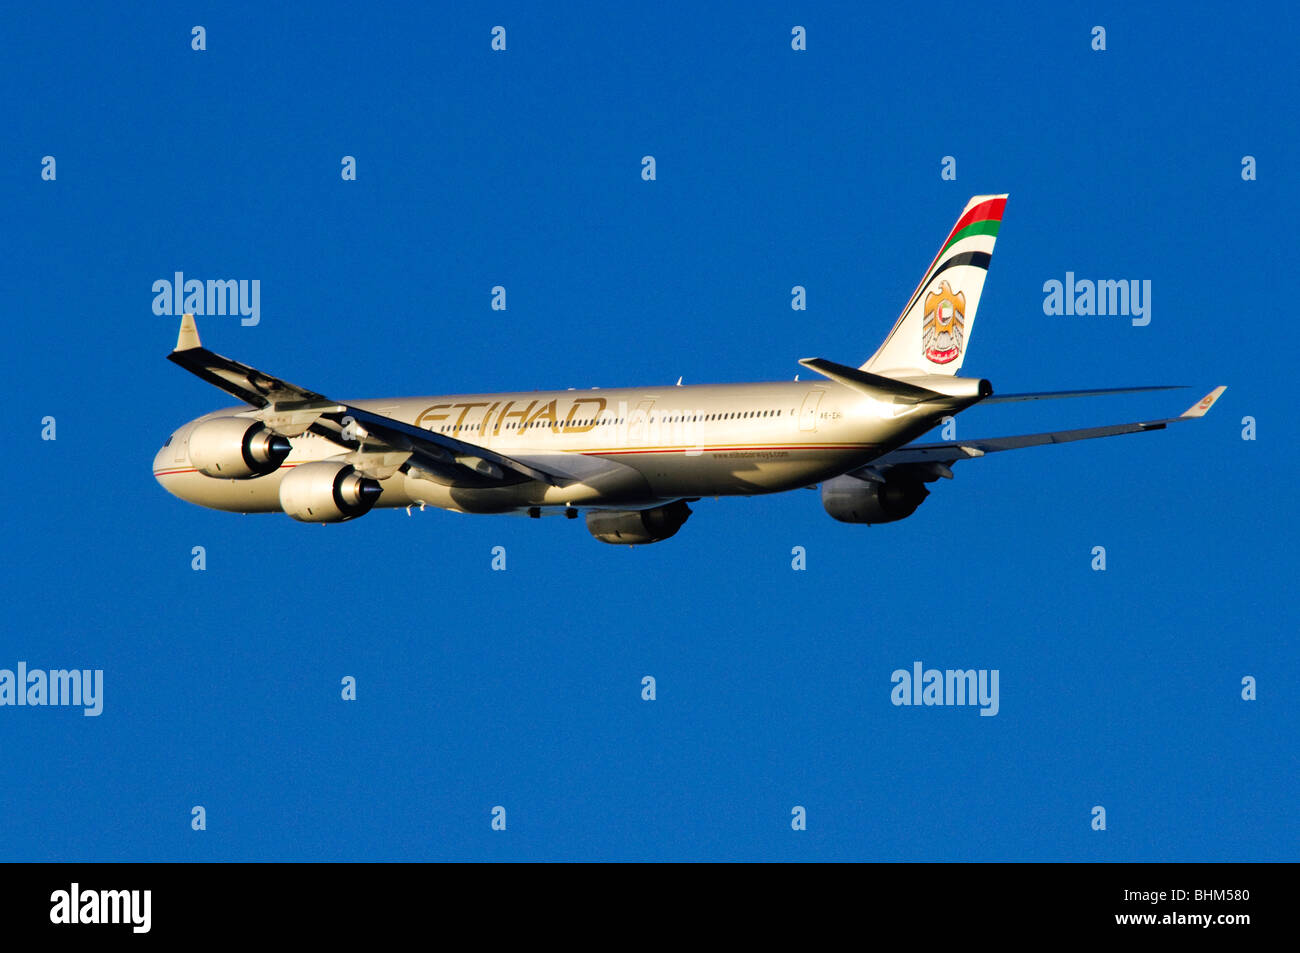 Airbus A340 operated by Etihad Airways climbing out from take off at London Heathrow Airport. Stock Photo